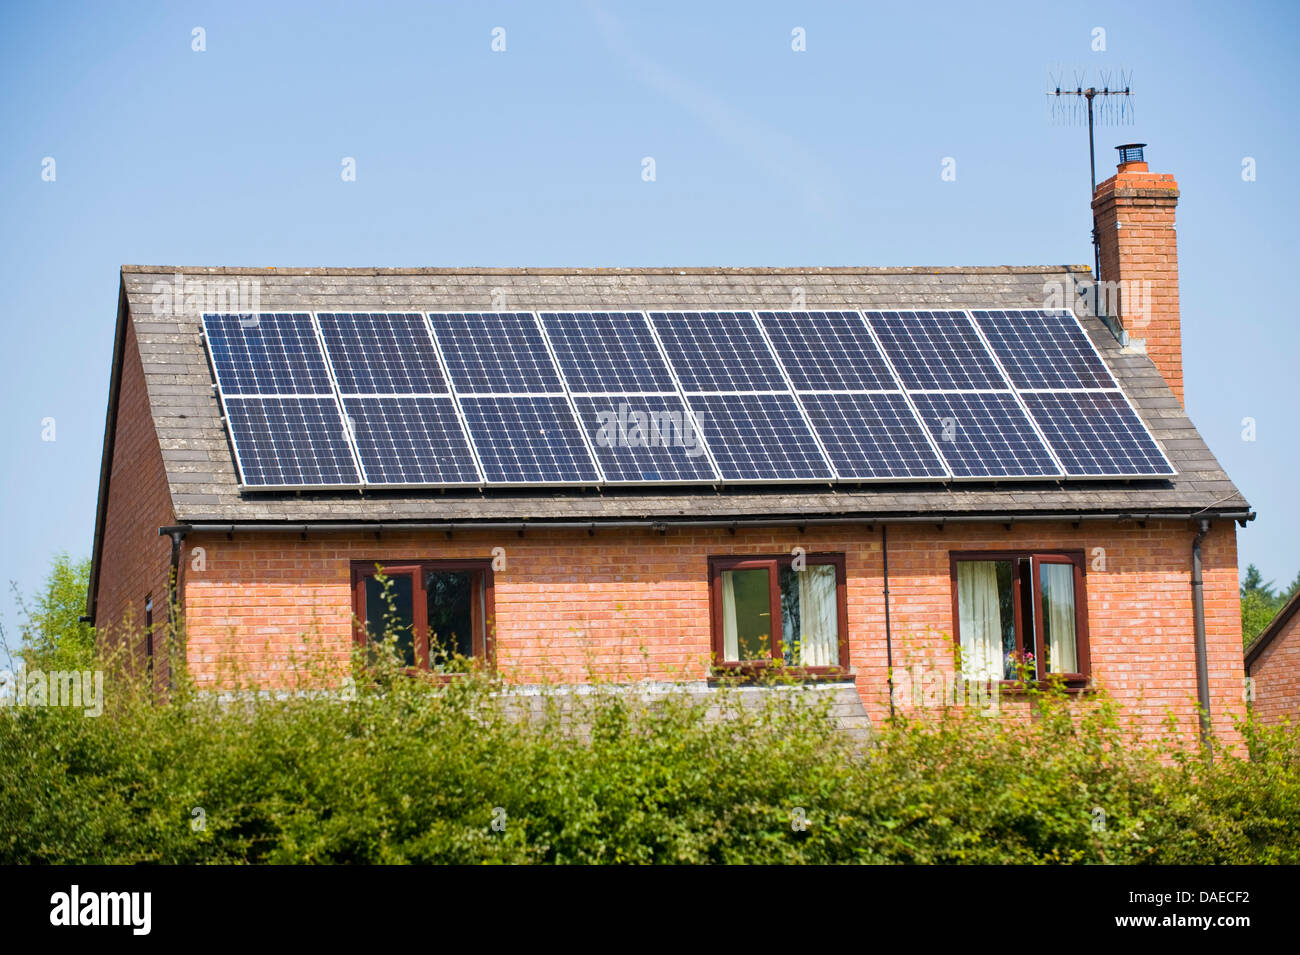 Solar Panels On Roof Of Modern Detached House In Rural